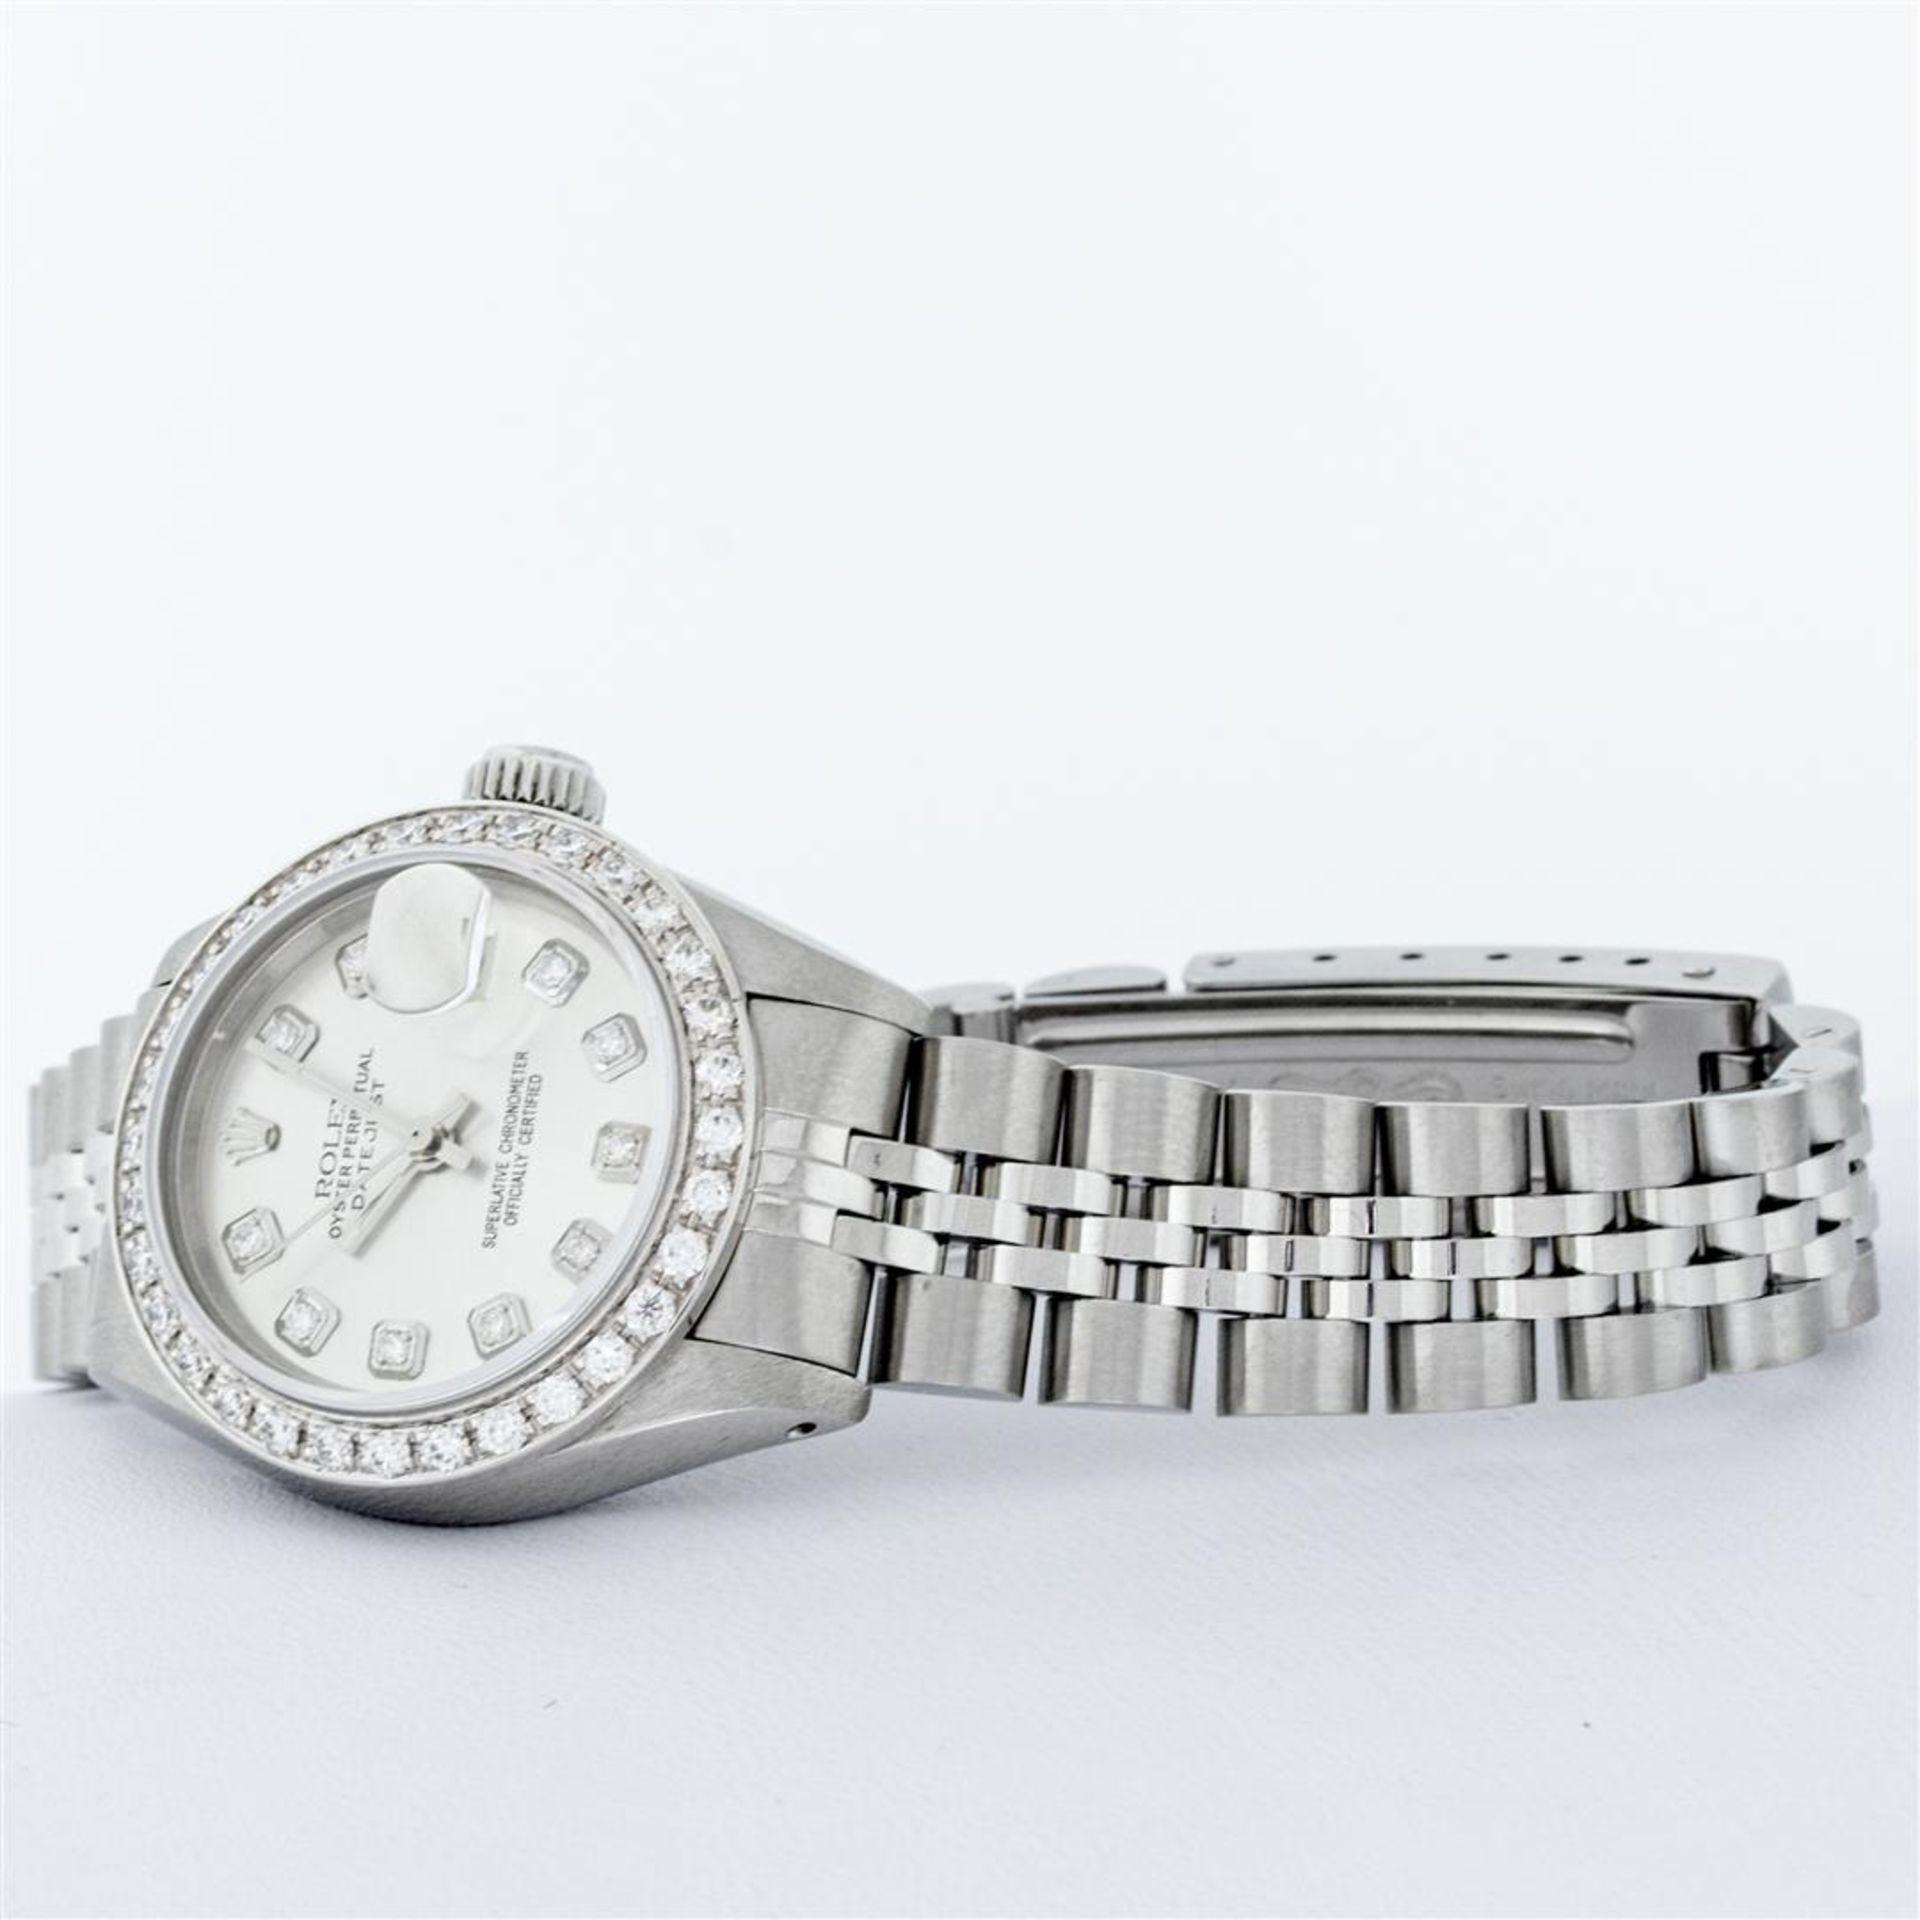 Rolex Ladies Stainless Steel Silver Diamond 26MM Oyster Perpetual Datejust - Image 5 of 9